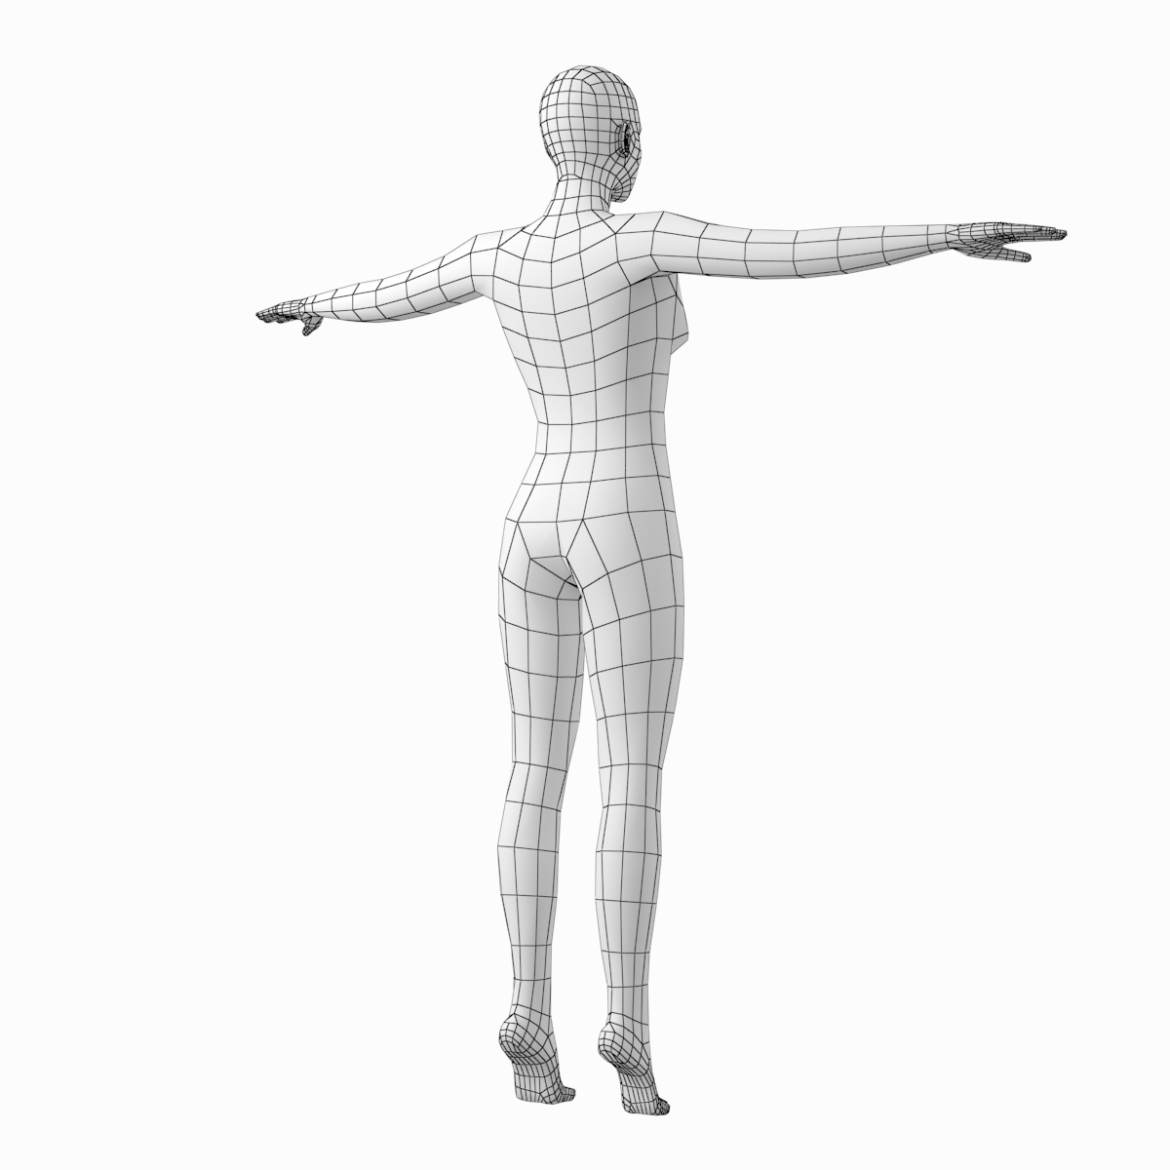 male and female base mesh in t-pose 3d model png stl obj ma mb max fbx dxf dwg dae c4d 3ds txt 305181